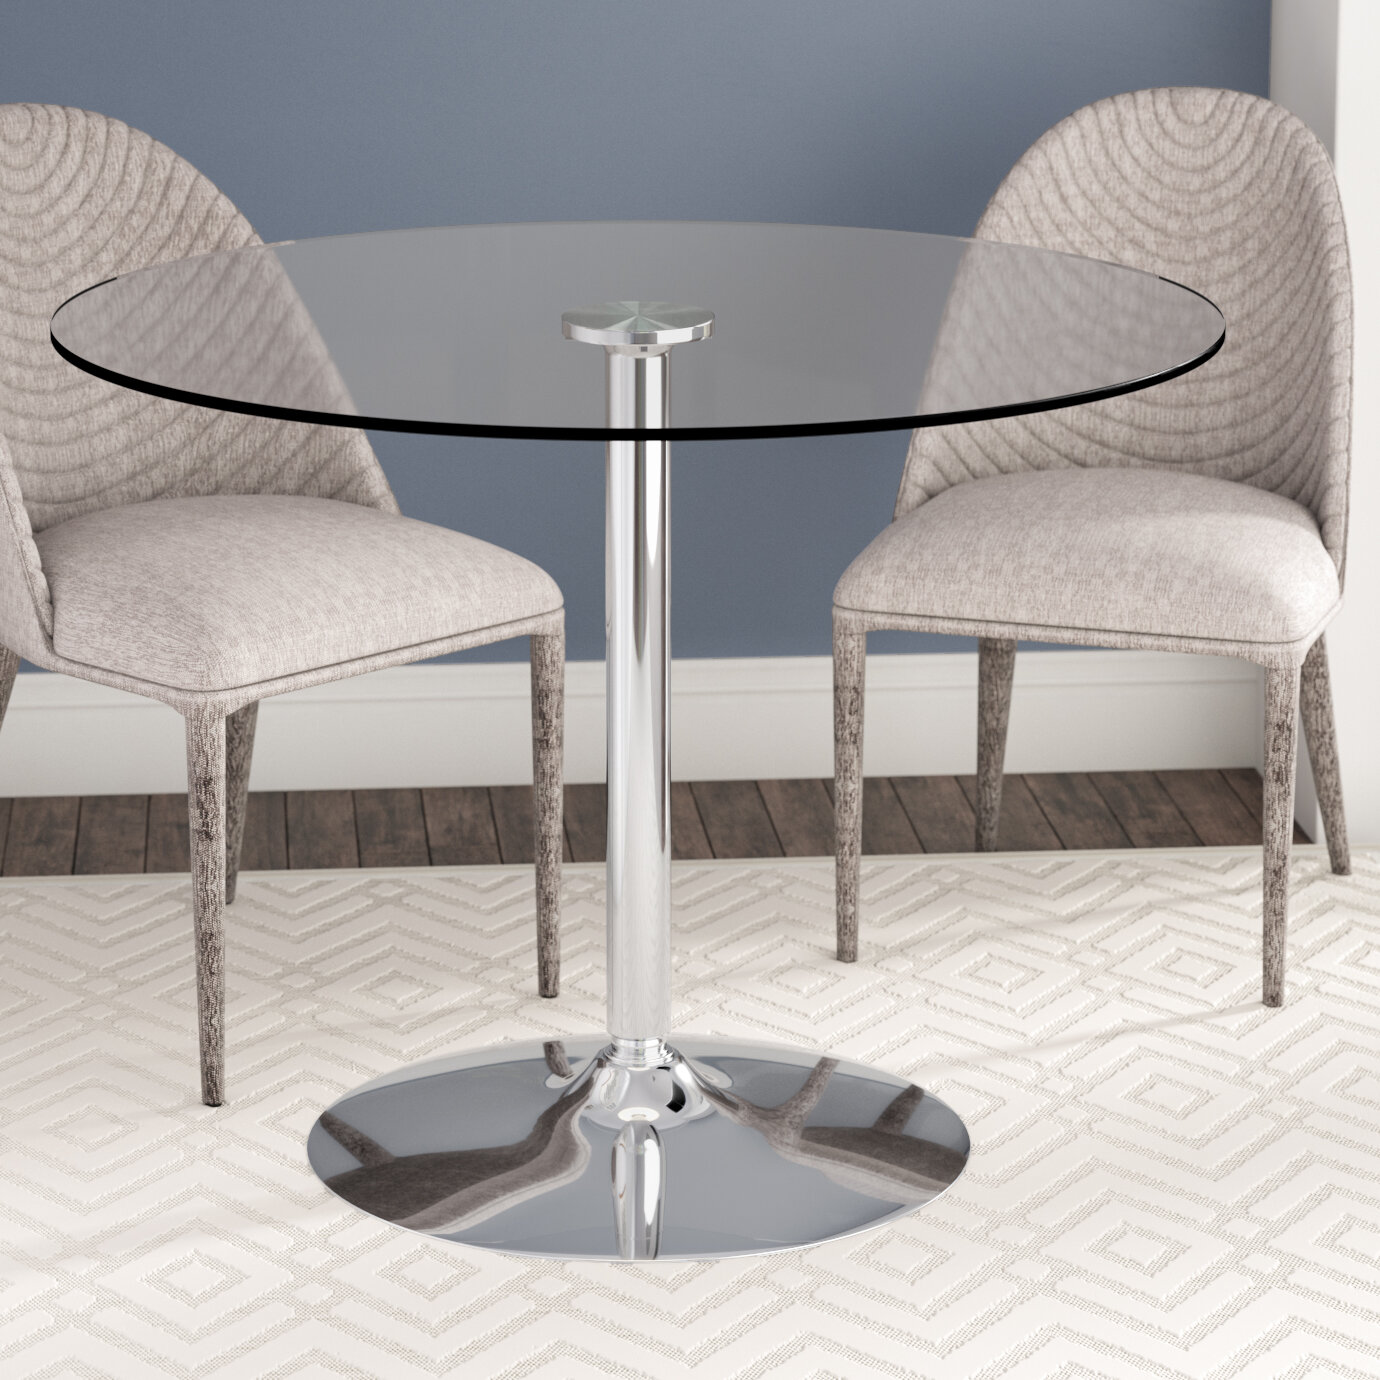 36 In Round Glass Dining Table   Wayfair